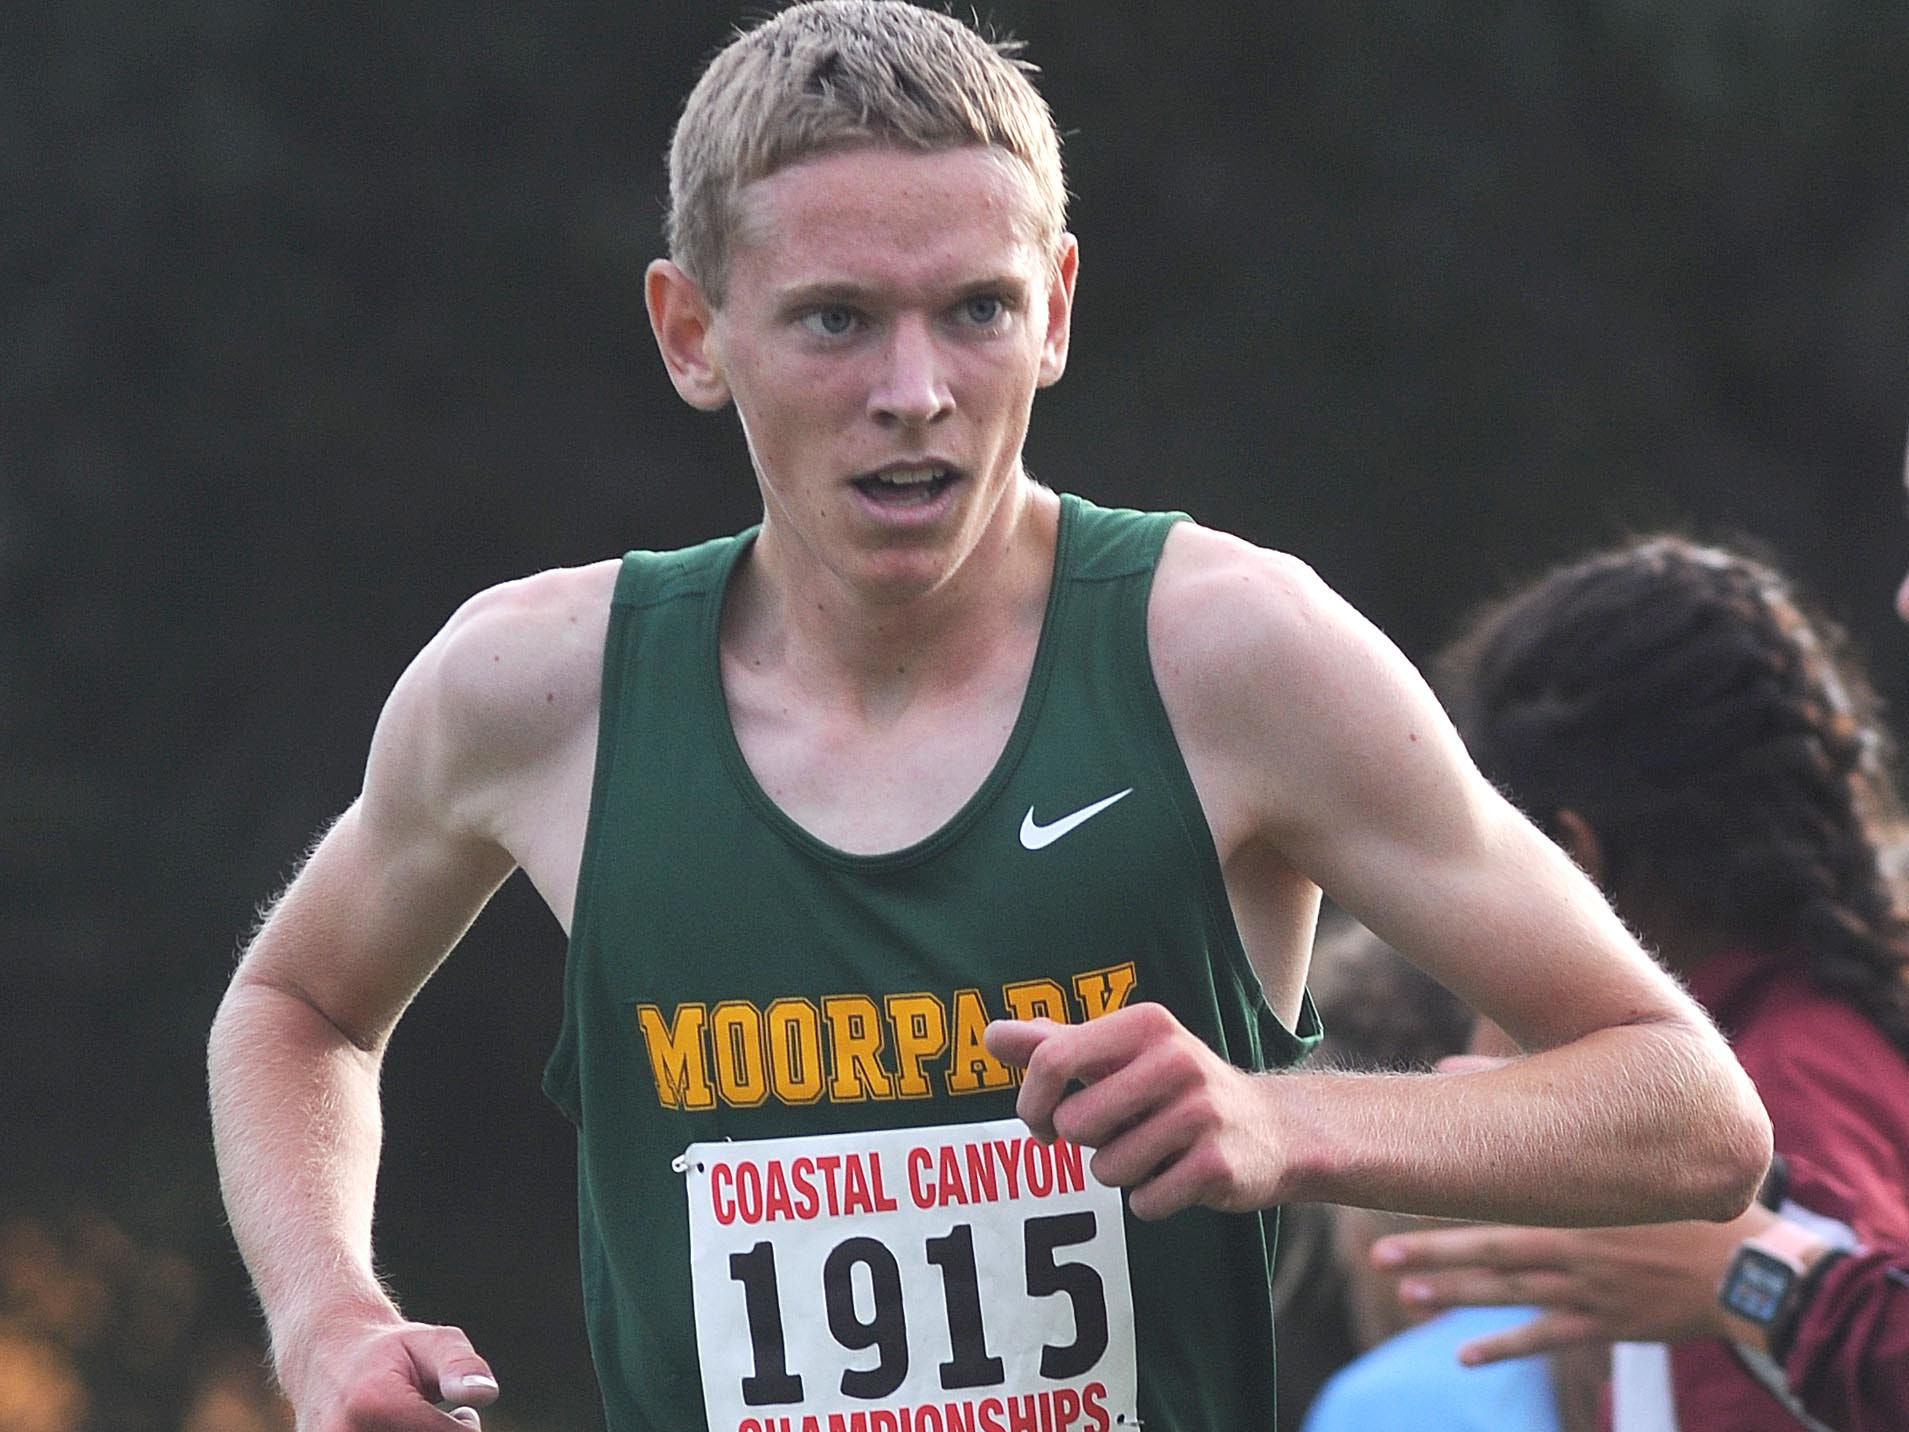 Keith Murray of Moorpark crosses the finish line with a time of 15:55.2 to win the boys race at the Coastal Canyon League championships Thursday at Mission Oaks Park in Camarillo.